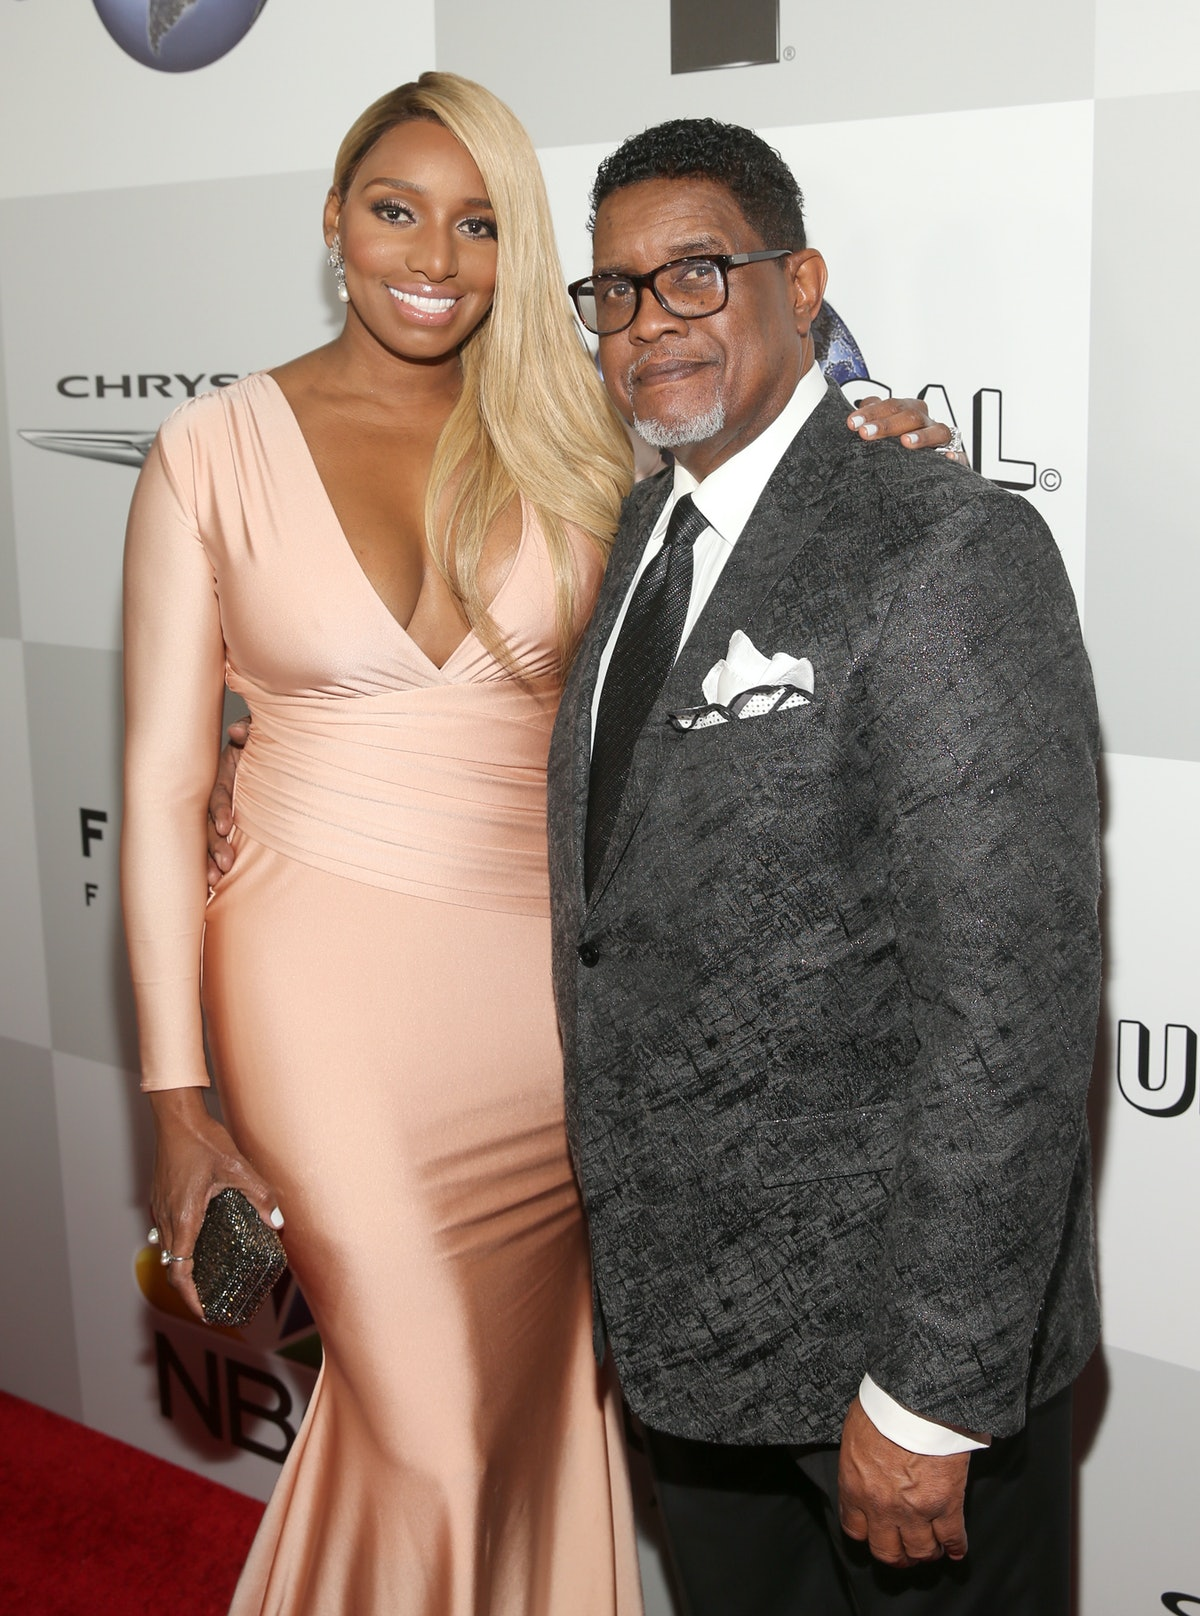 NeNe Leakes Opens Up About How Gregg's Cancer Diagnosis Impacted Their Lives On & Off Screen